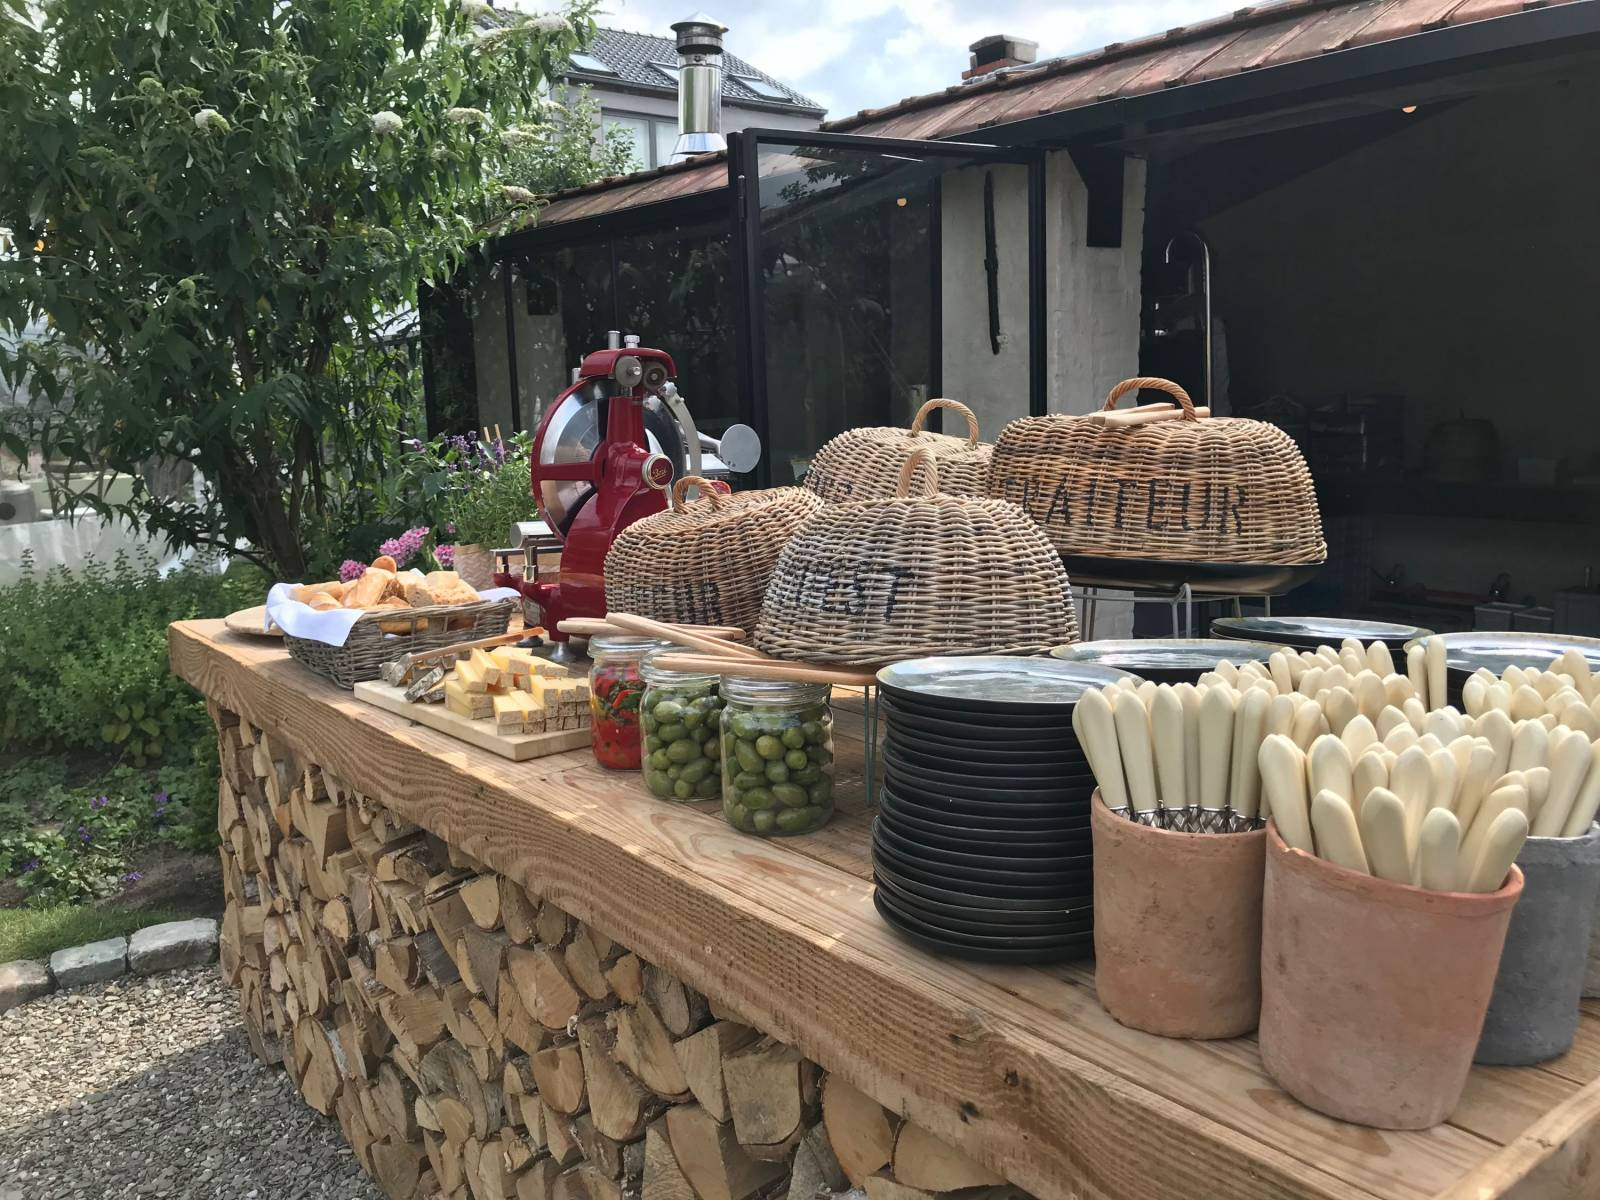 Hendrickx feesten - Catering - Traiteur - Cateraar - House of Weddings - 27